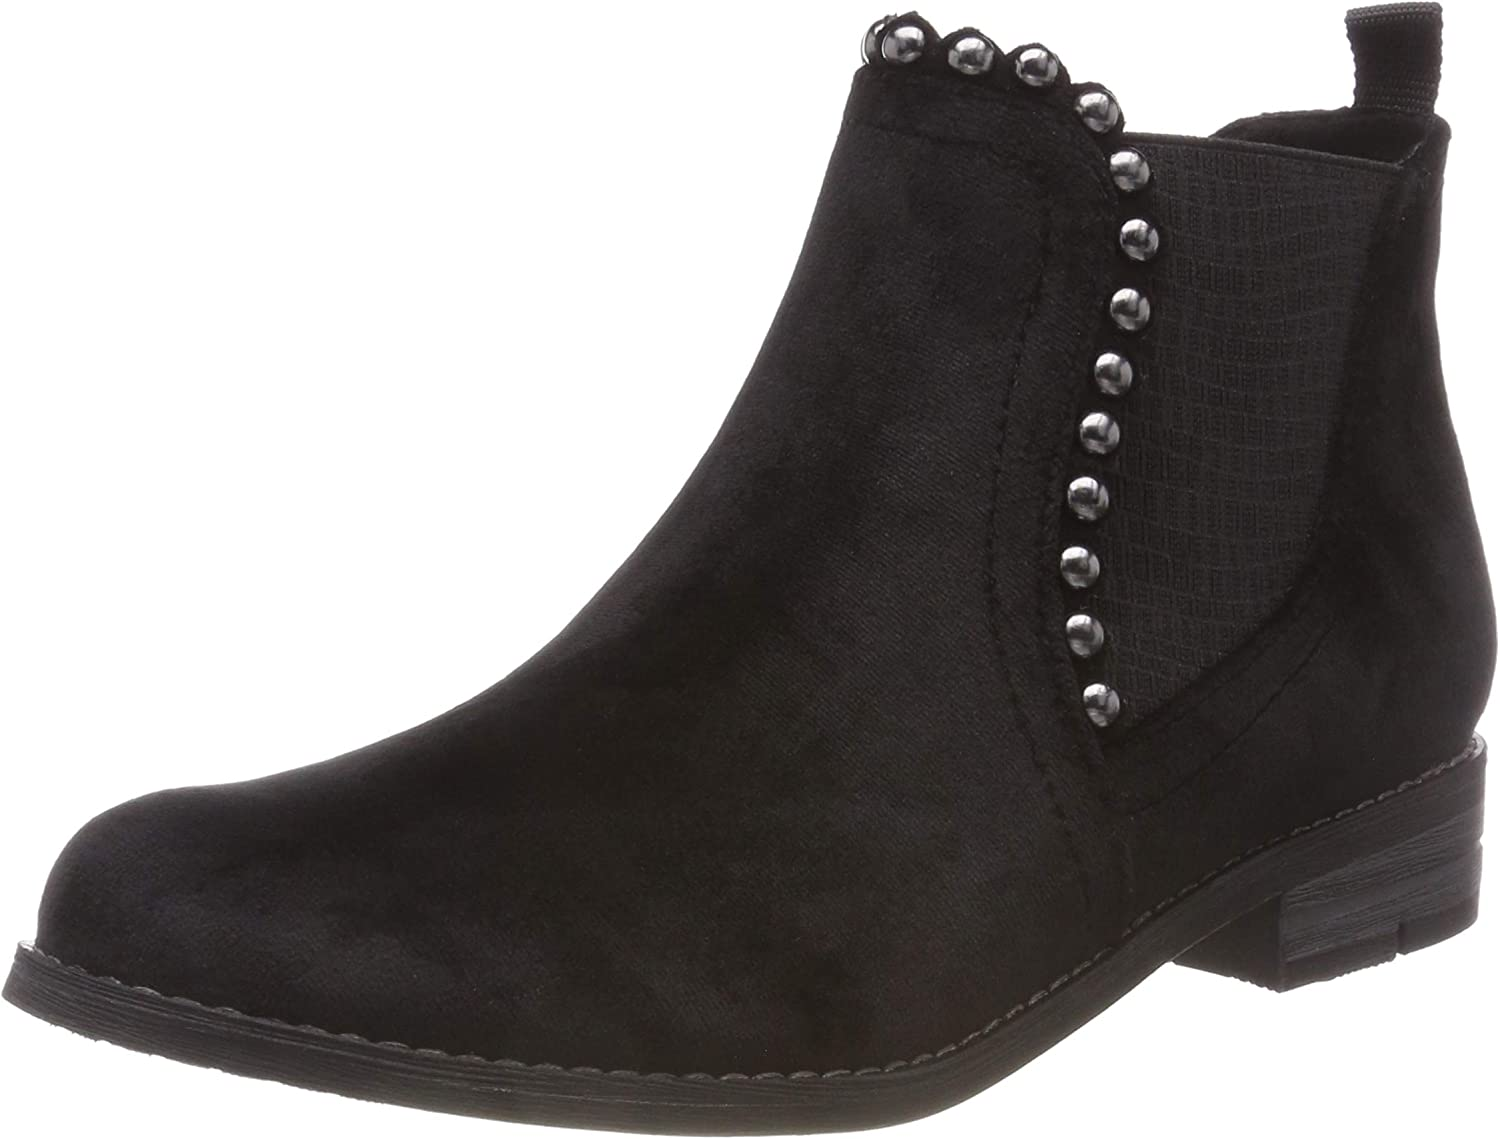 Marco Tozzi Women's Black Scallop Pearl Detail Low Heel Ankle Boot